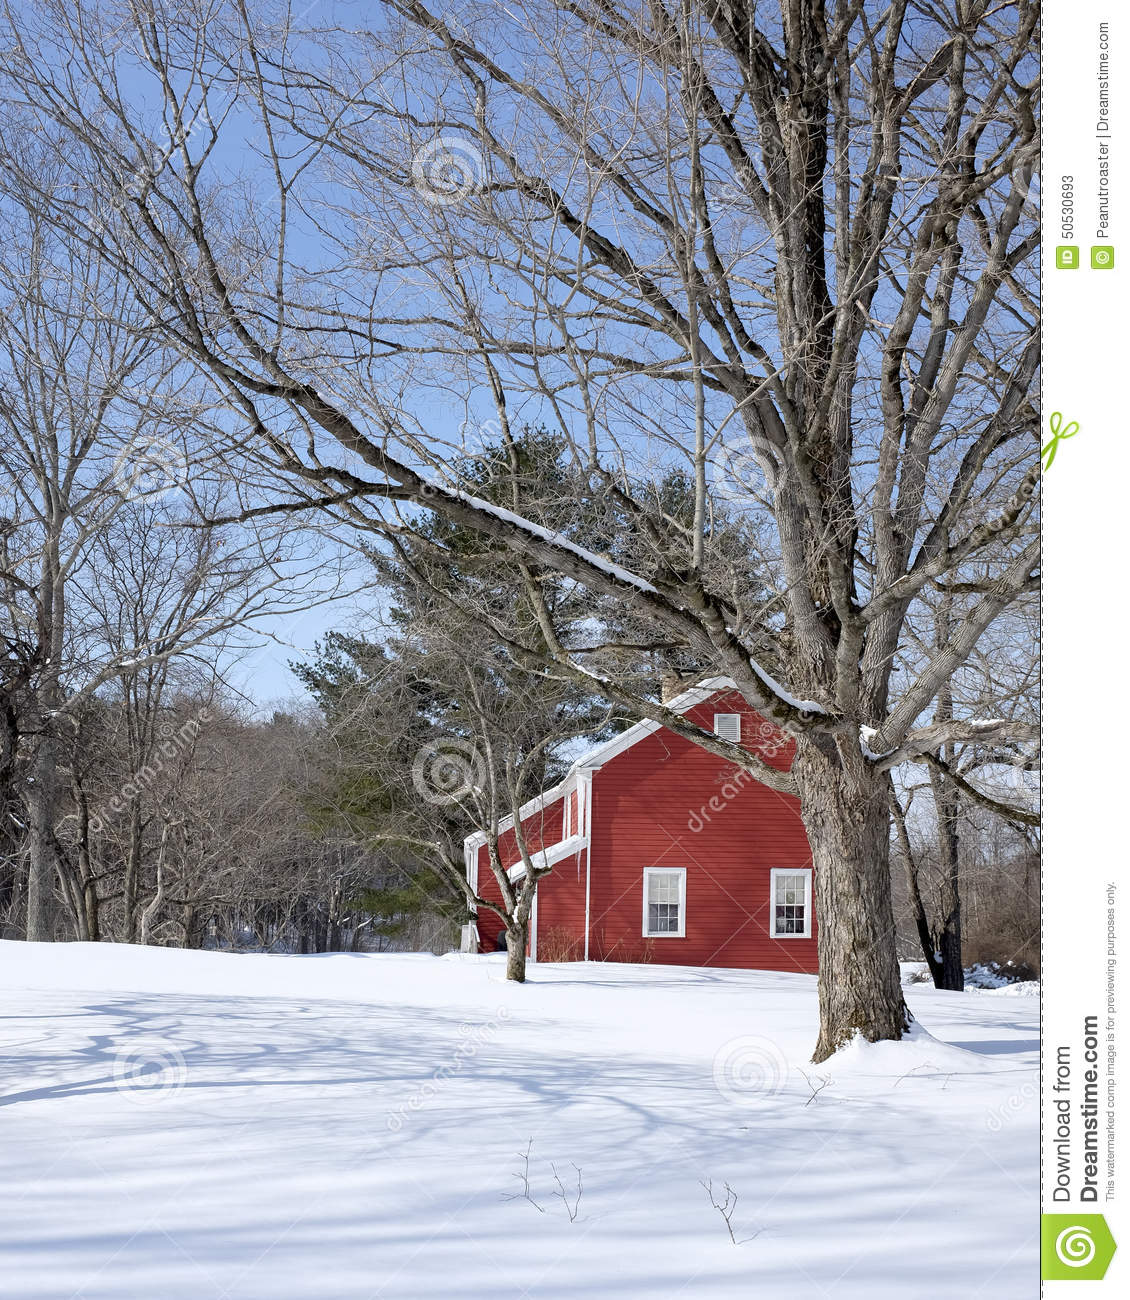 Classic vermont red house in winter stock image image of for Cost of building a house in vermont